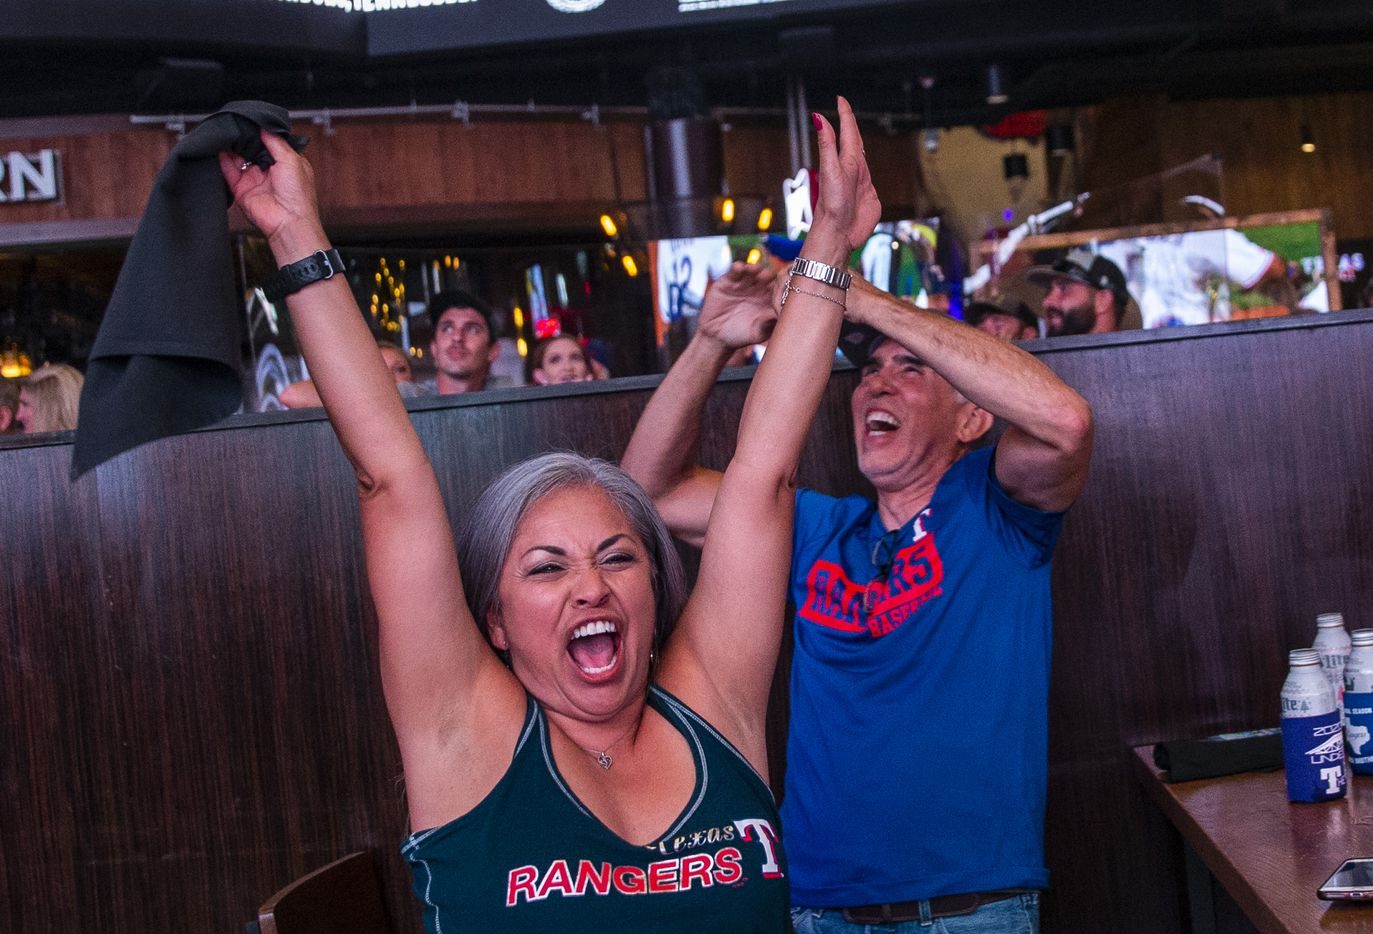 Claudia Borunda (left), from California, cheers with fans as the Texas Rangers win their opening day game of their season at Texas Live! in Arlington, Texas, on Friday, July 24, 2020. The Rangers played the Colorado Rockies at the new Globe Life Field stadium, but fans had to watch on televised screens outside due to the ongoing pandemic. (Lynda M. Gonzalez/The Dallas Morning News)